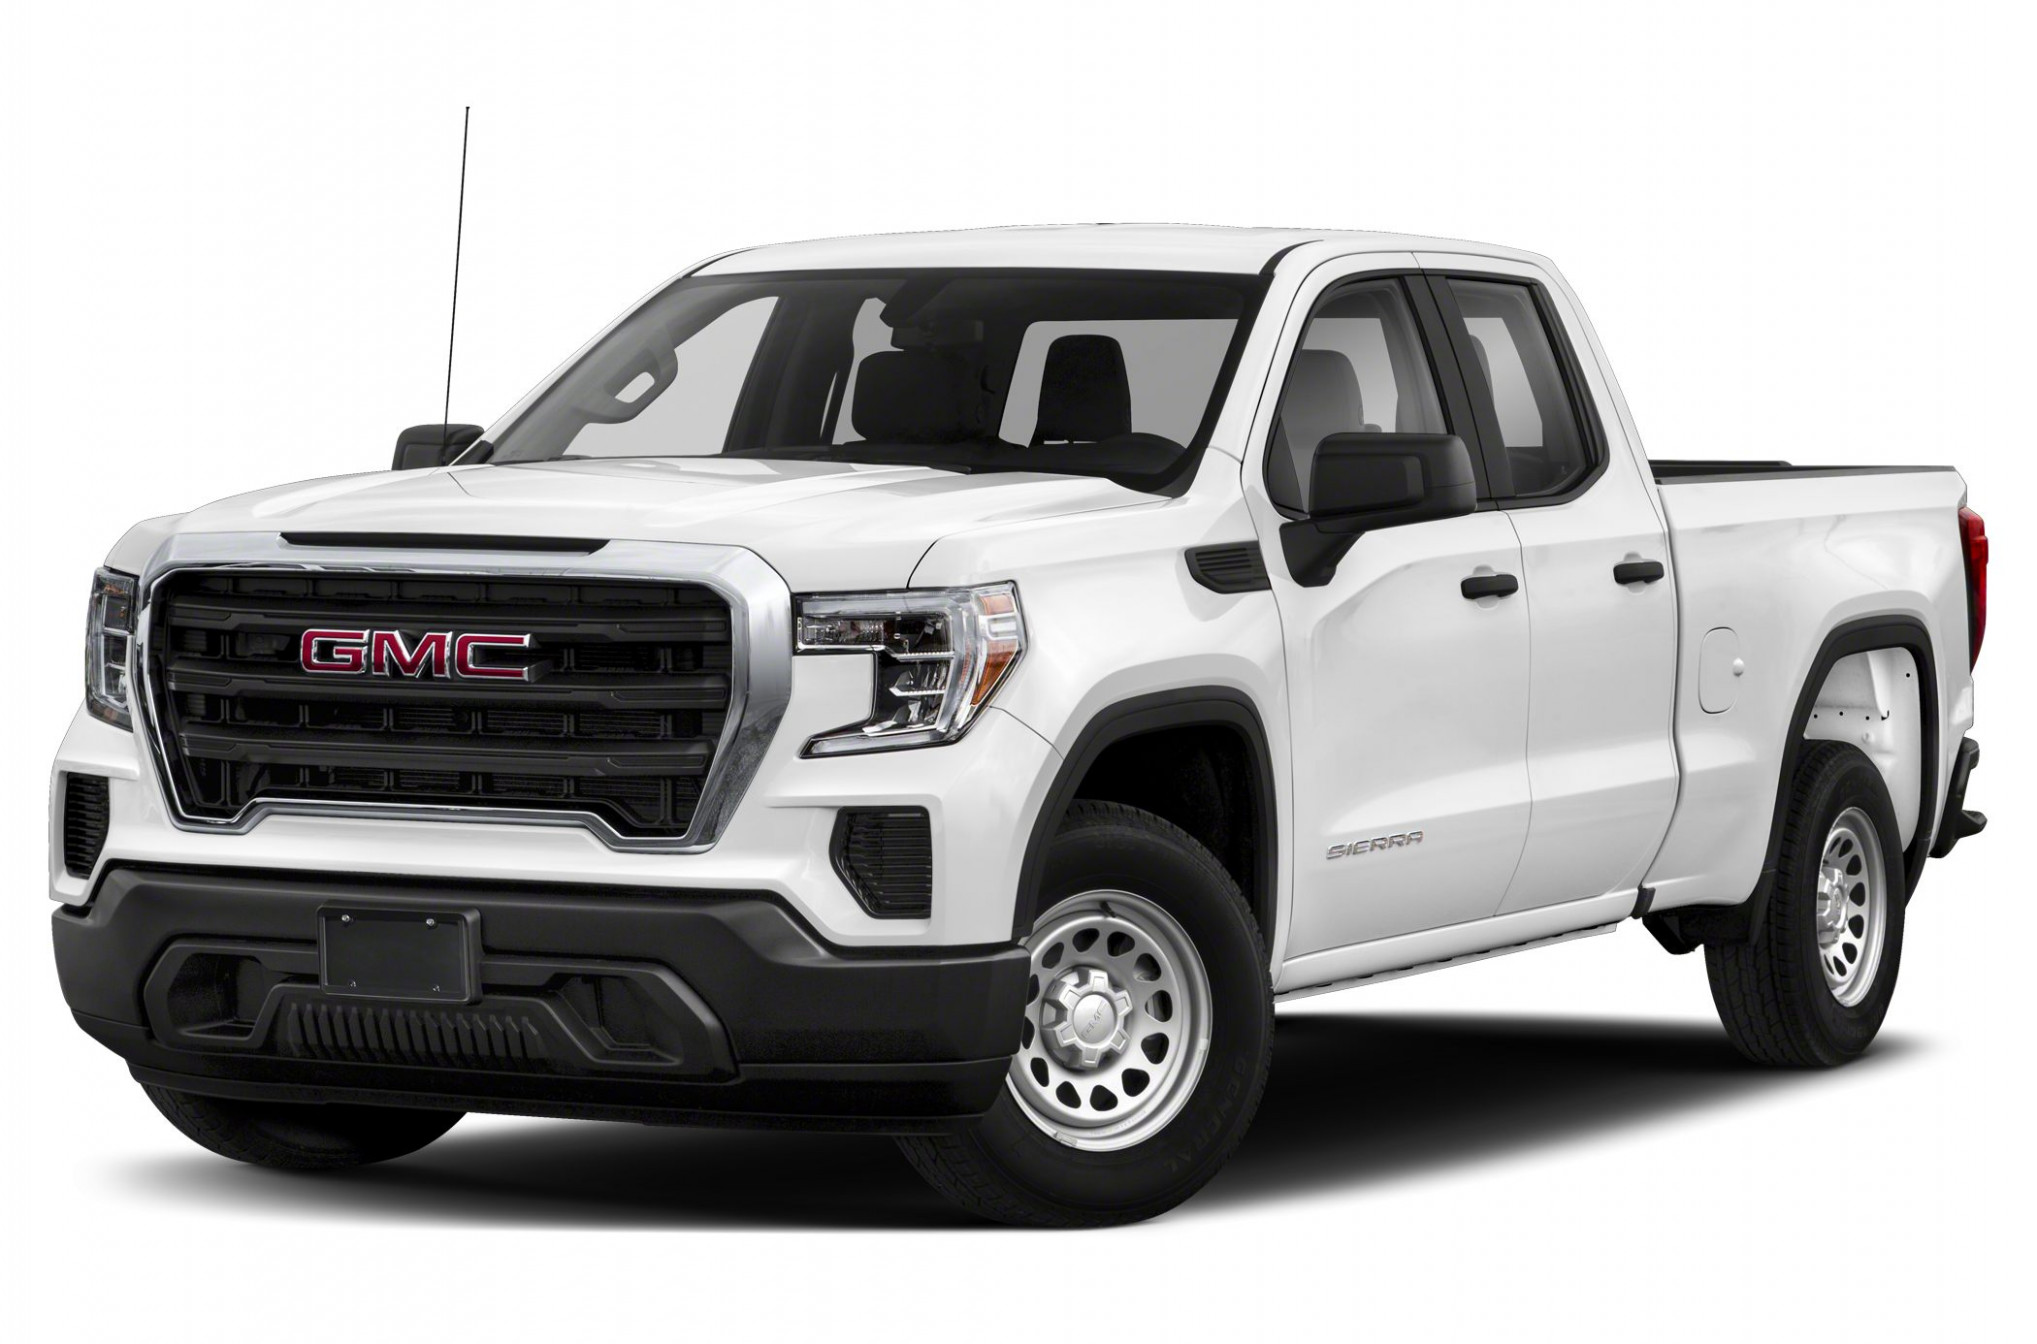 8 GMC Sierra 8 Elevation 8x8 Double Cab 8.8 ft. box 187.8 in